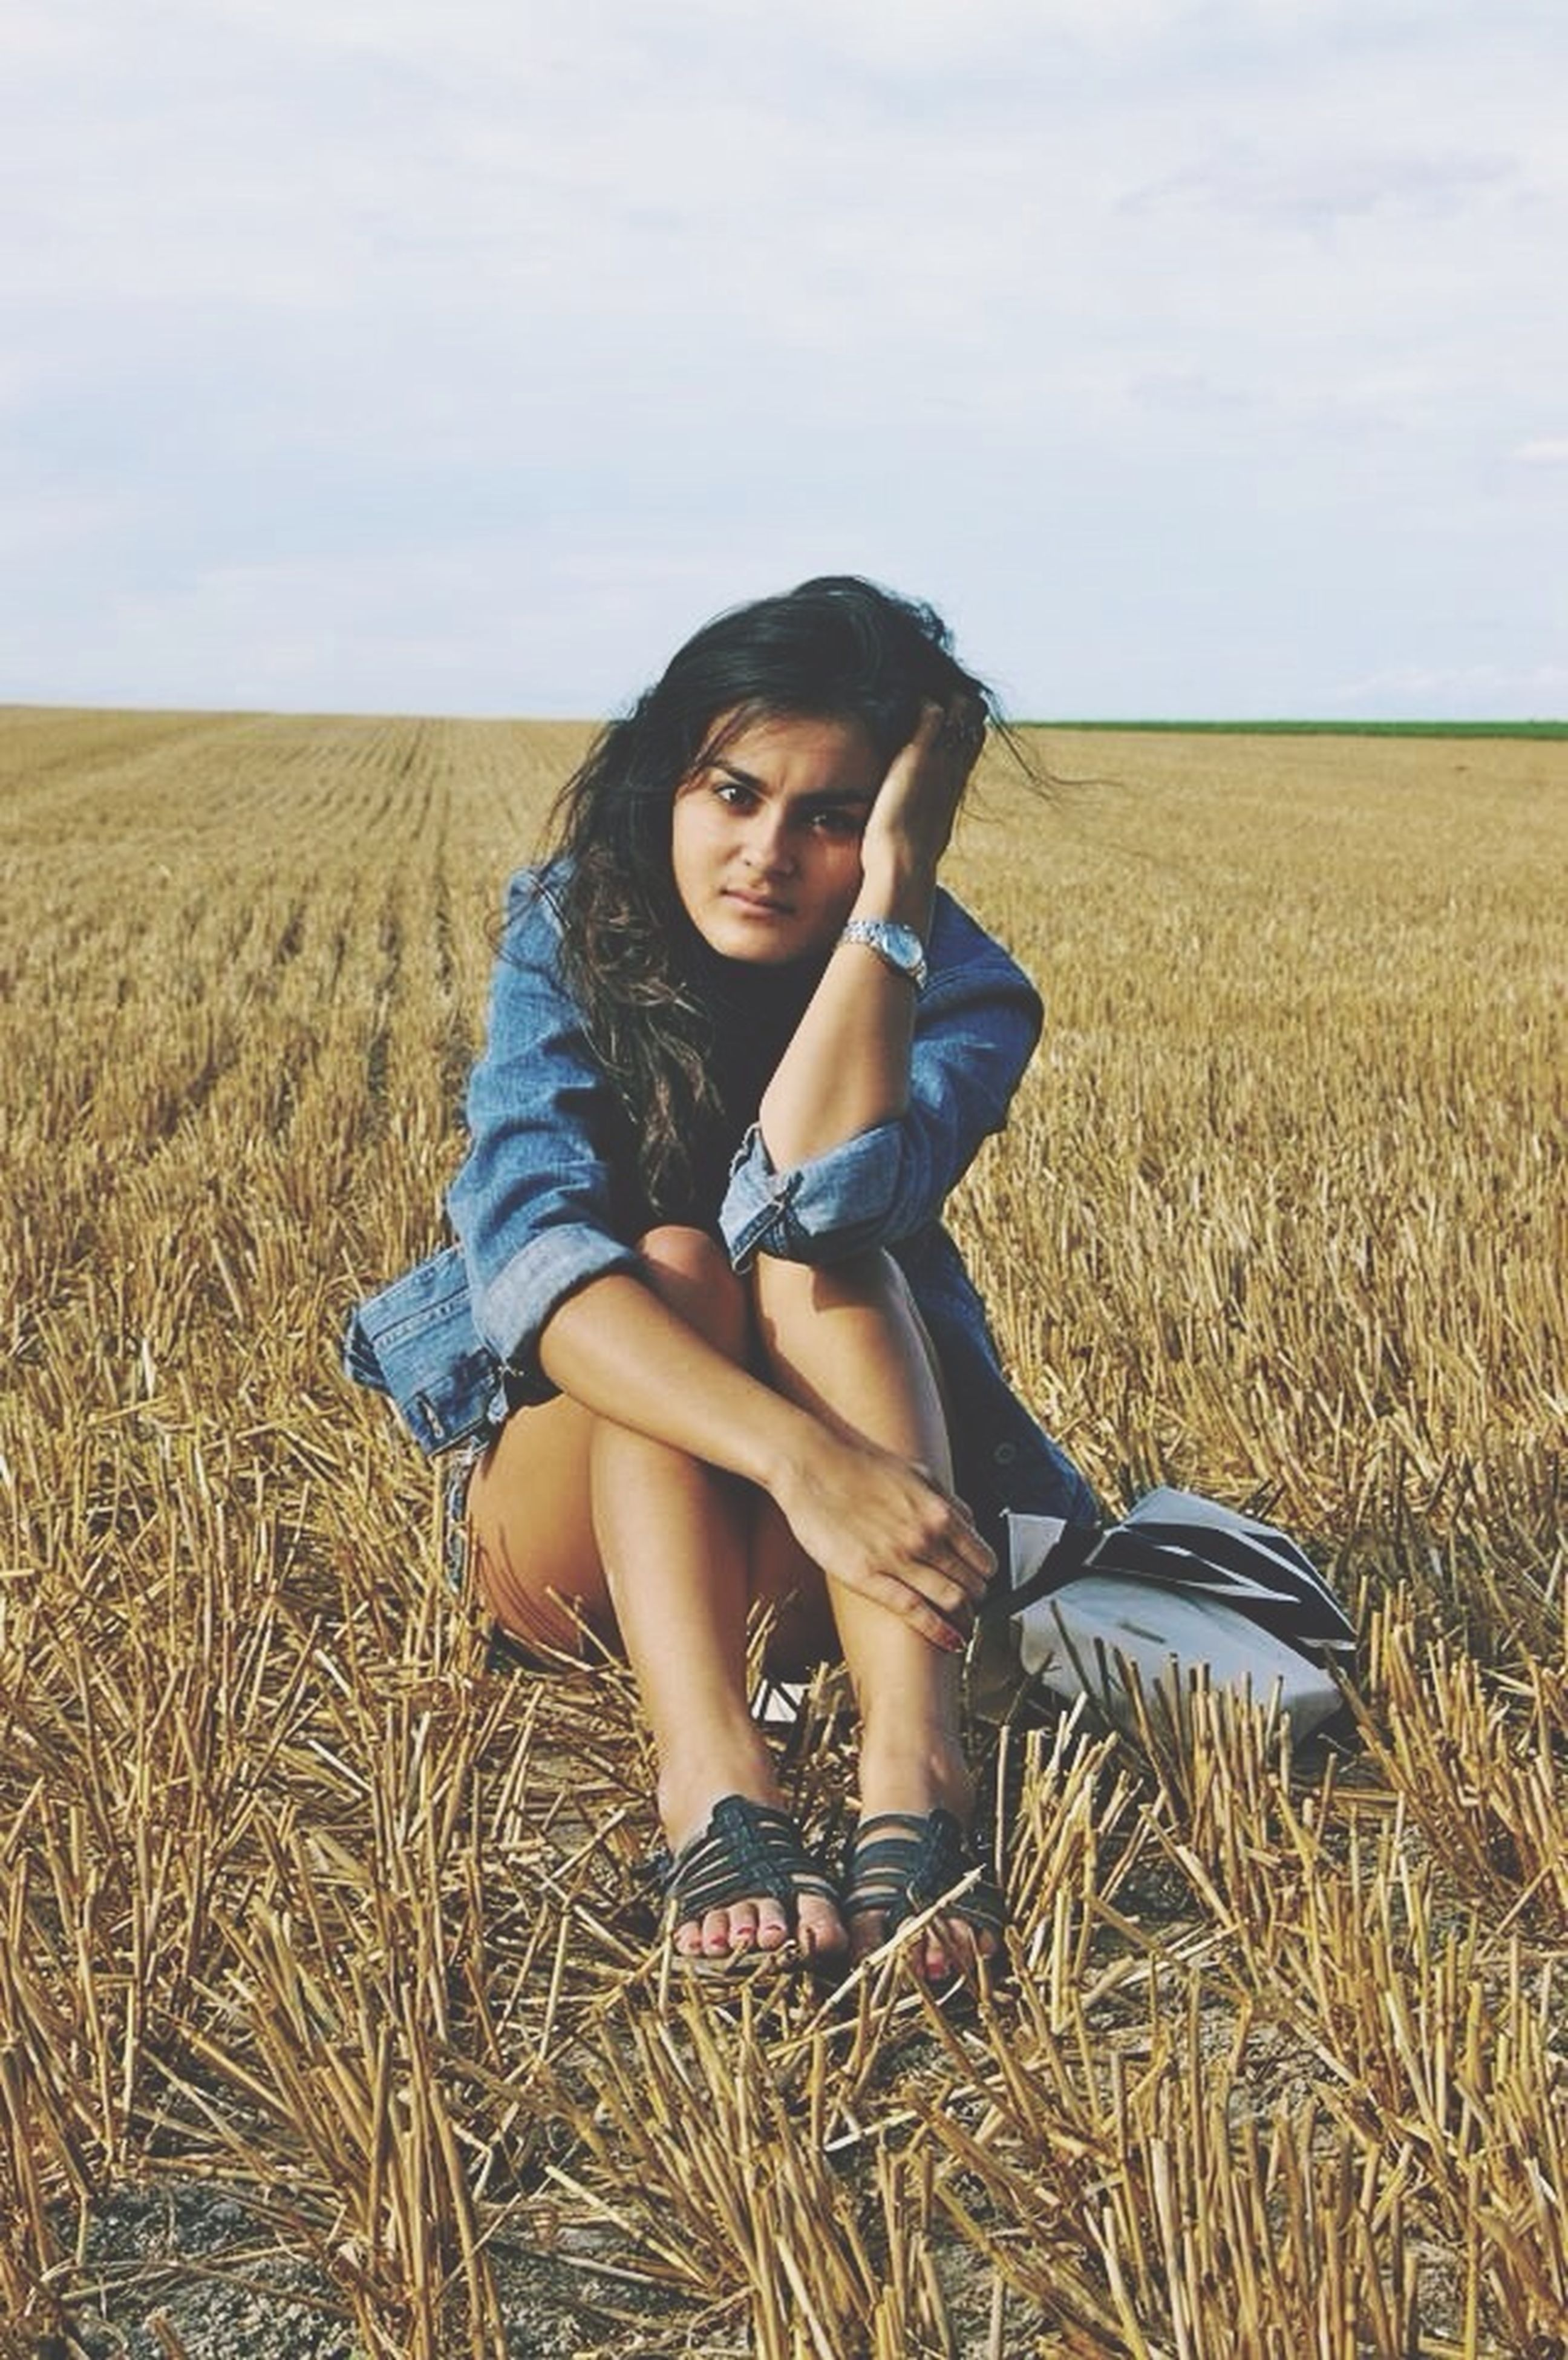 young adult, young women, lifestyles, field, leisure activity, grass, sky, person, casual clothing, landscape, long hair, sitting, full length, relaxation, tranquility, agriculture, nature